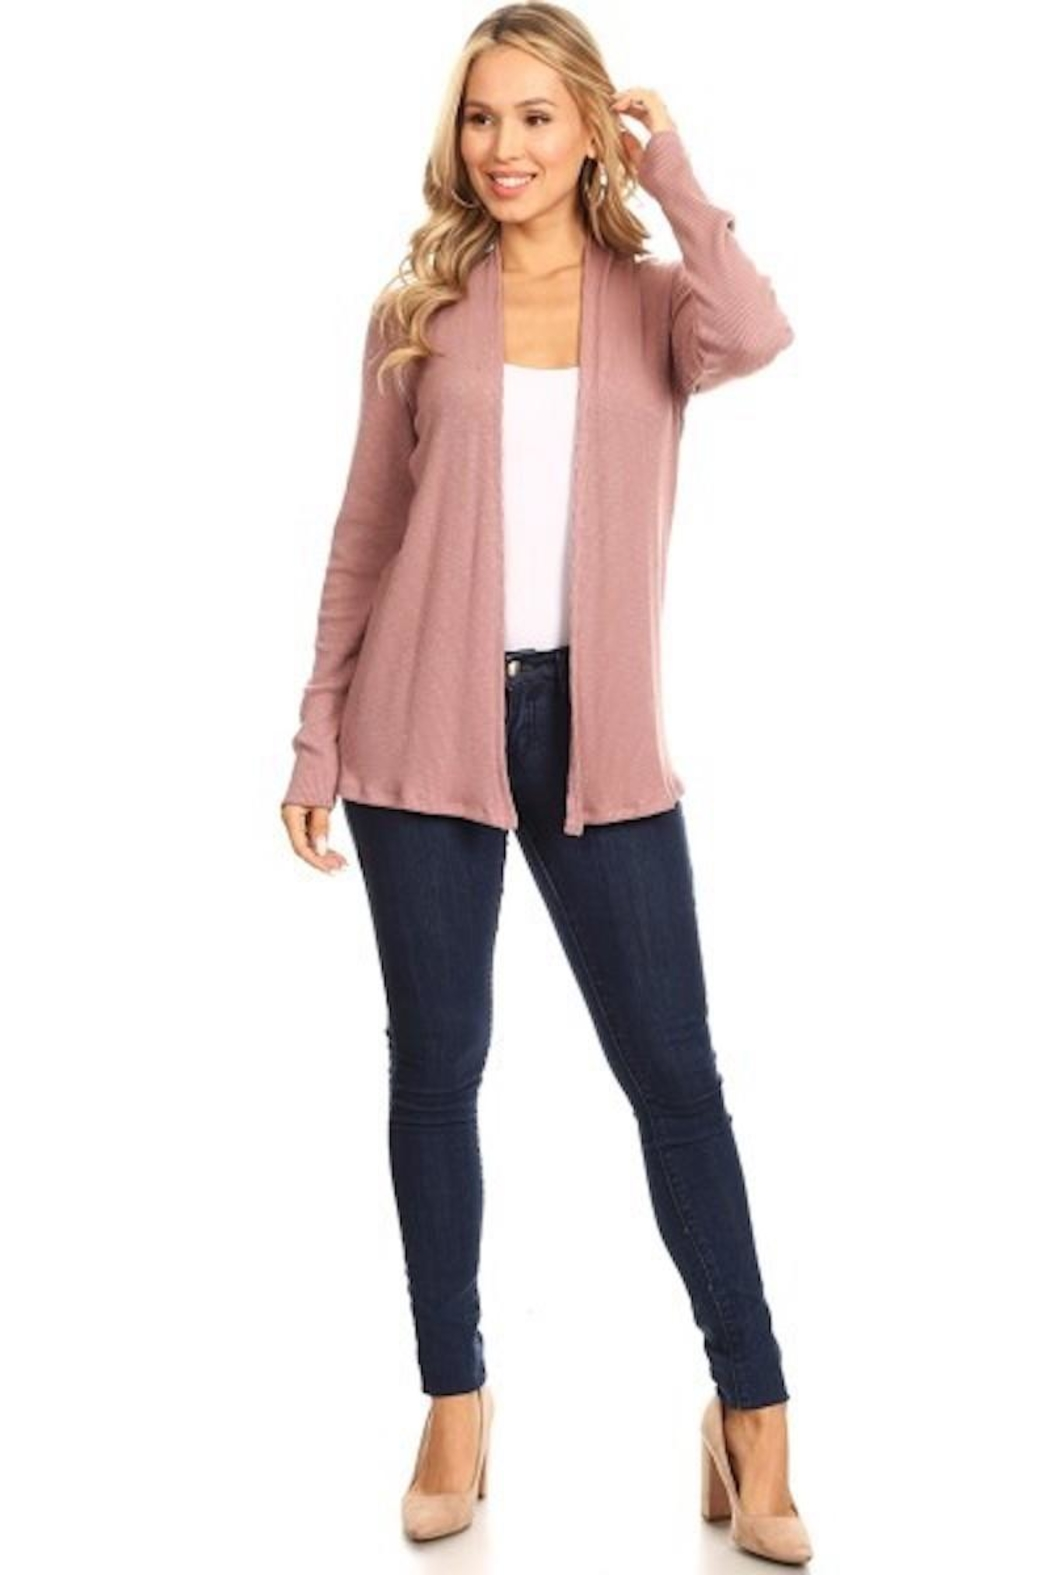 Chris & Carol Mauve Ribbed Cardigan - Side Cropped Image